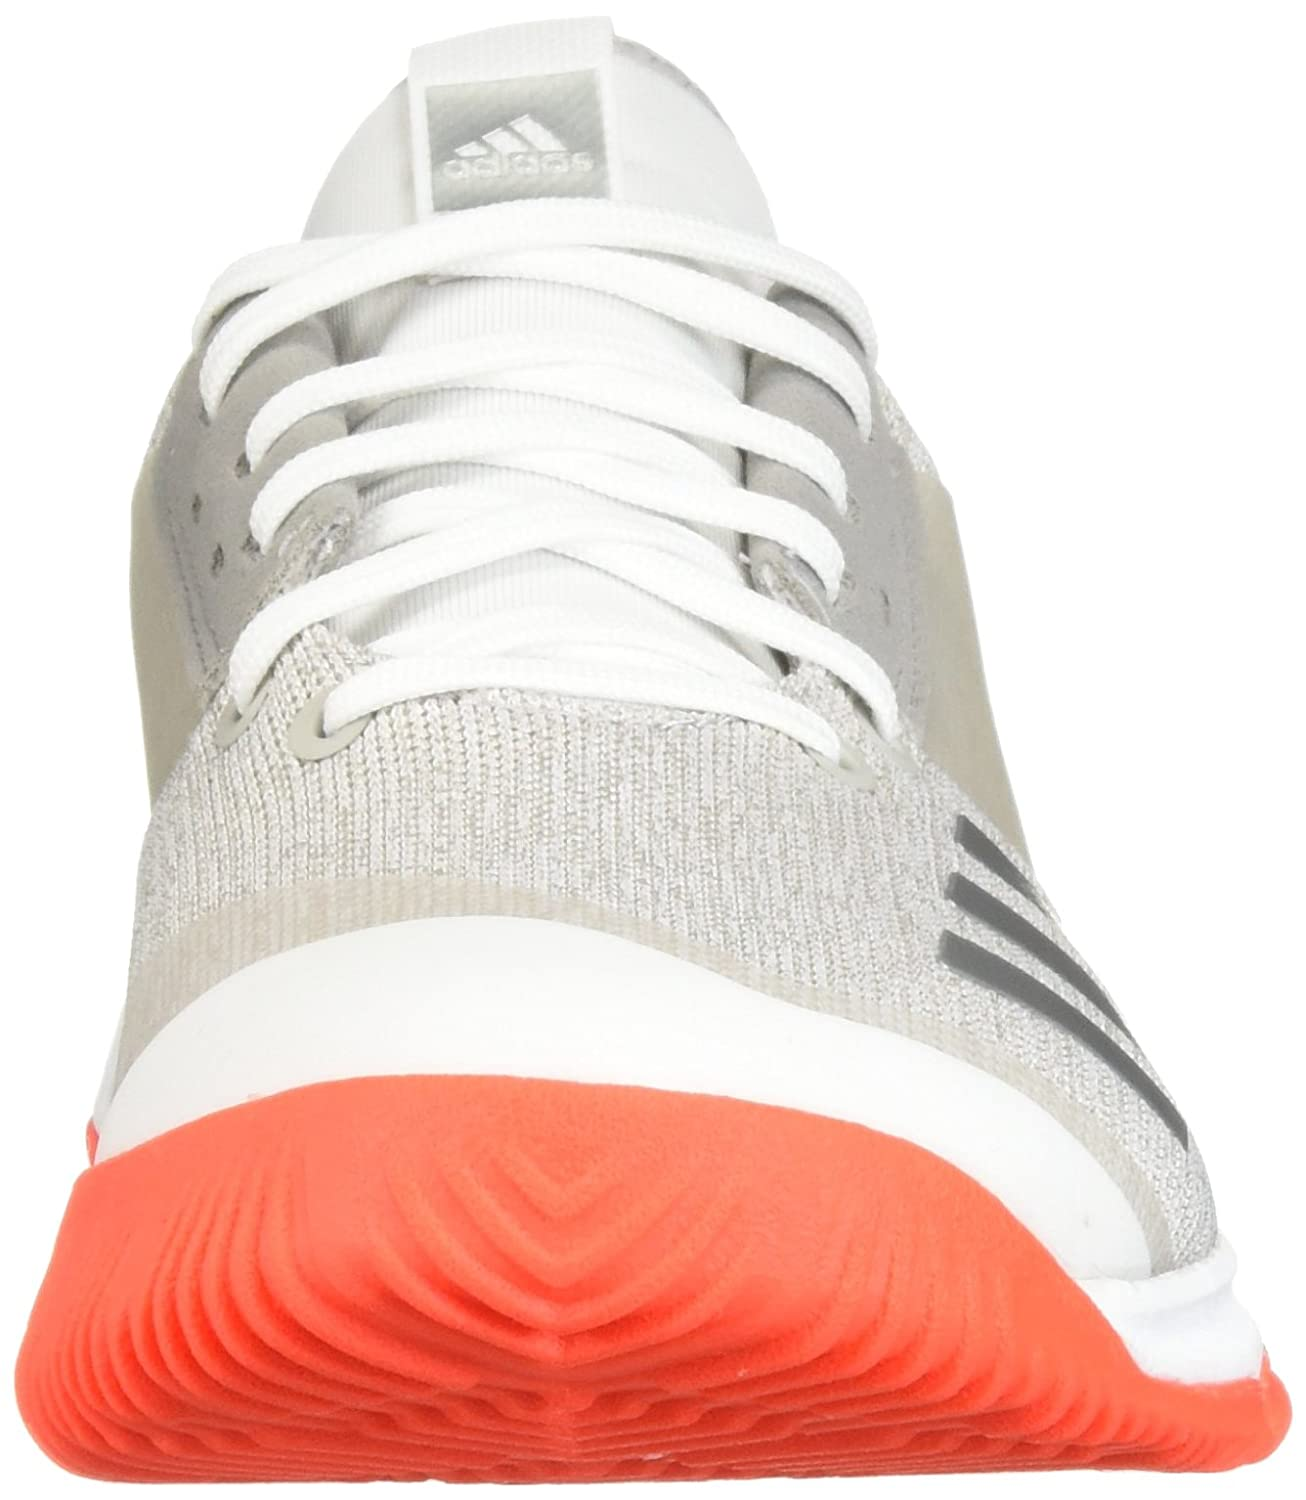 reputable site 02892 7f2ab adidas Womens Crazyflight Team Volleyball Shoe Amazon.co.uk Shoes  Bags